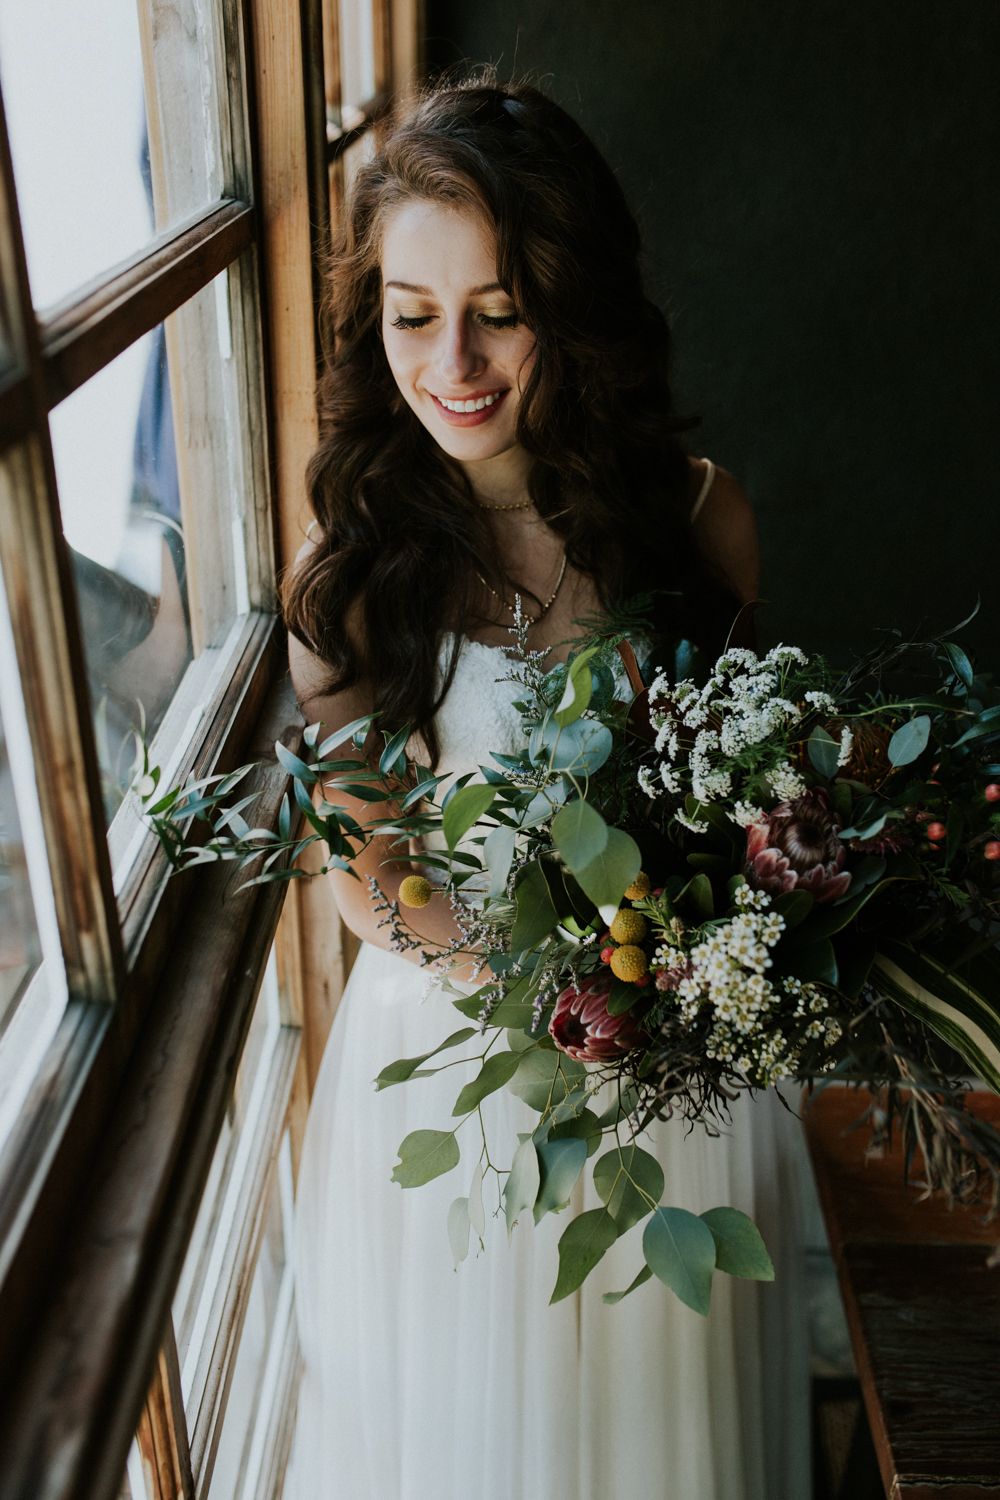 styled-colourful-wedding-photoshoot-bride-bhldn-floral-design-alberta-portrait-30.jpg